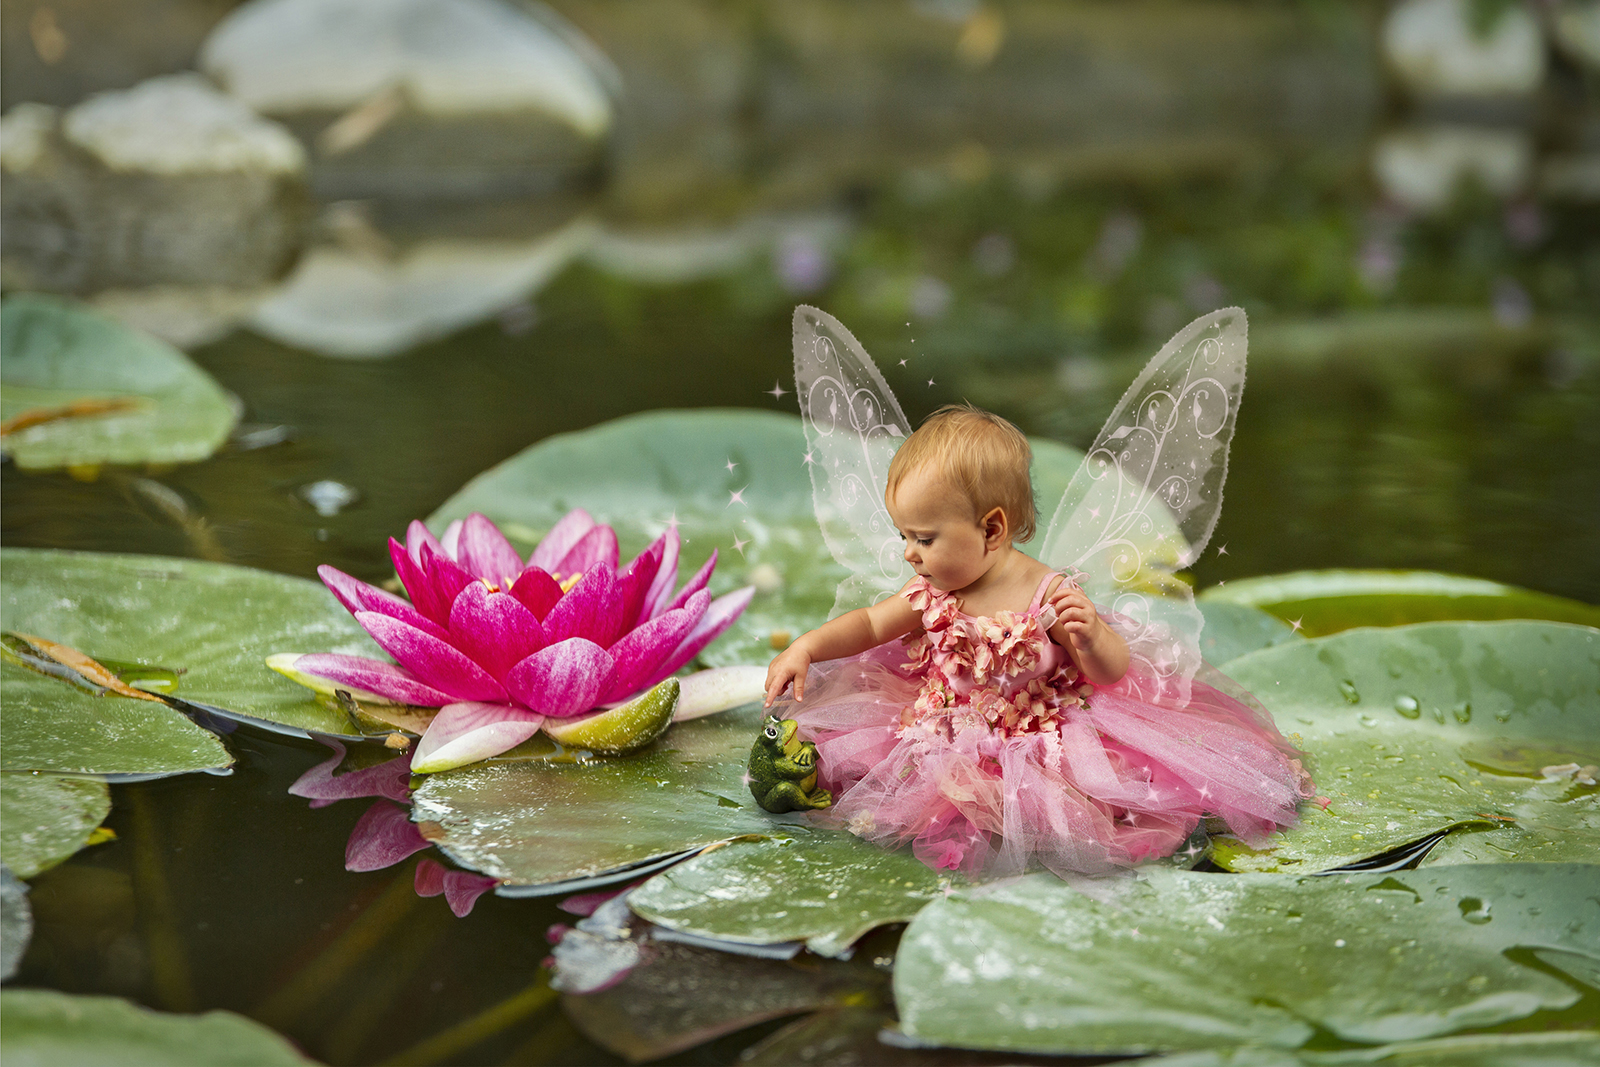 Lily pads christy peterson digital backgrounds for photographers for fairy composite pictures digital fairy wings brushes or overlays izmirmasajfo Images